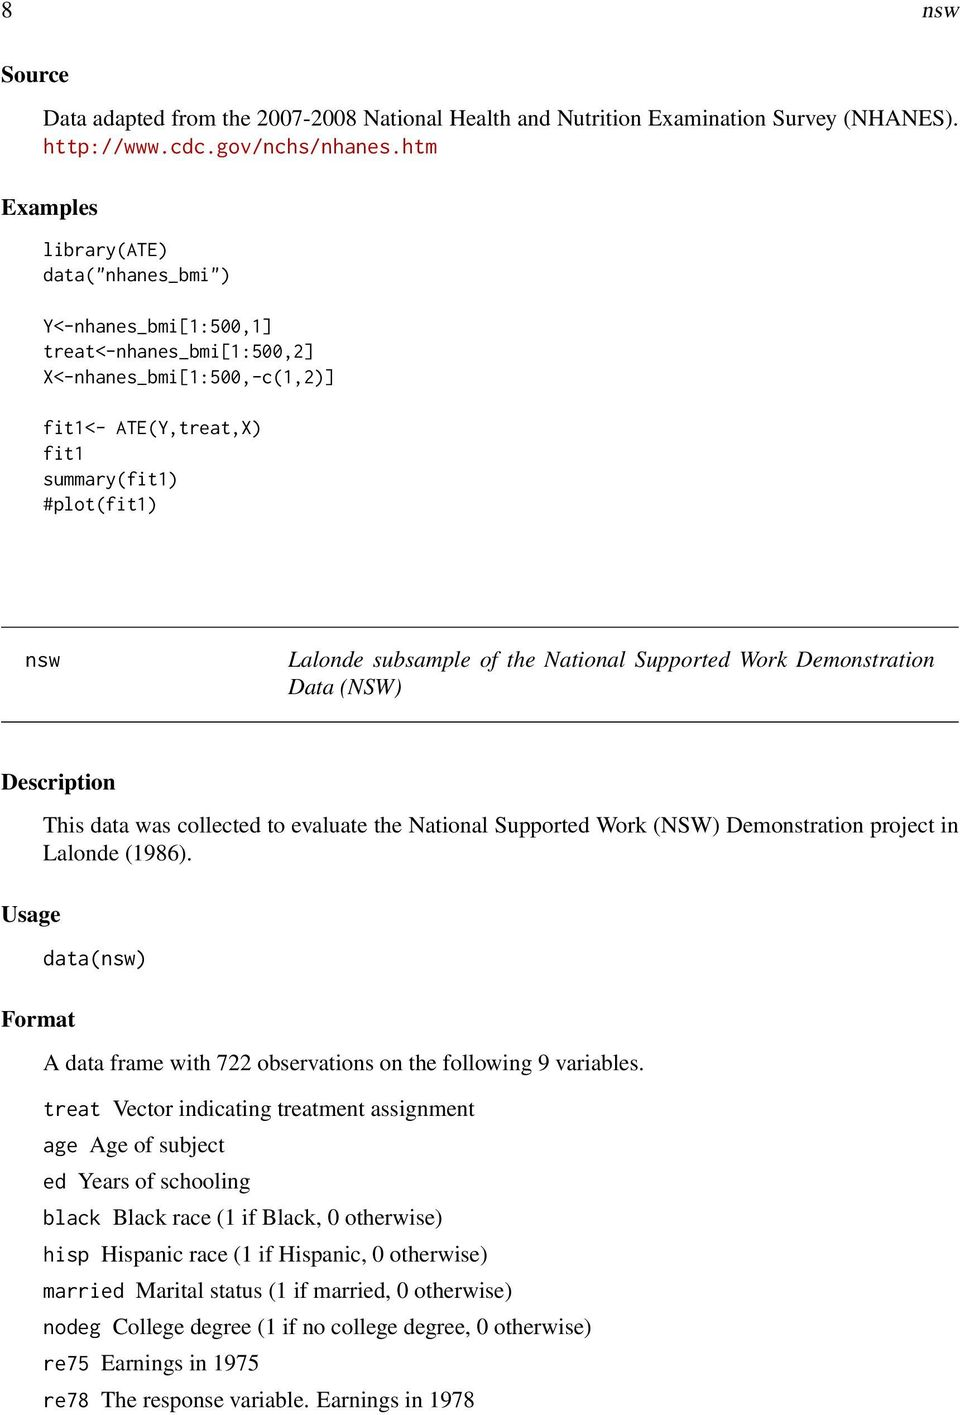 of the National Supported Work Demonstration Data (NSW) Description Usage Format This data was collected to evaluate the National Supported Work (NSW) Demonstration project in Lalonde (1986).